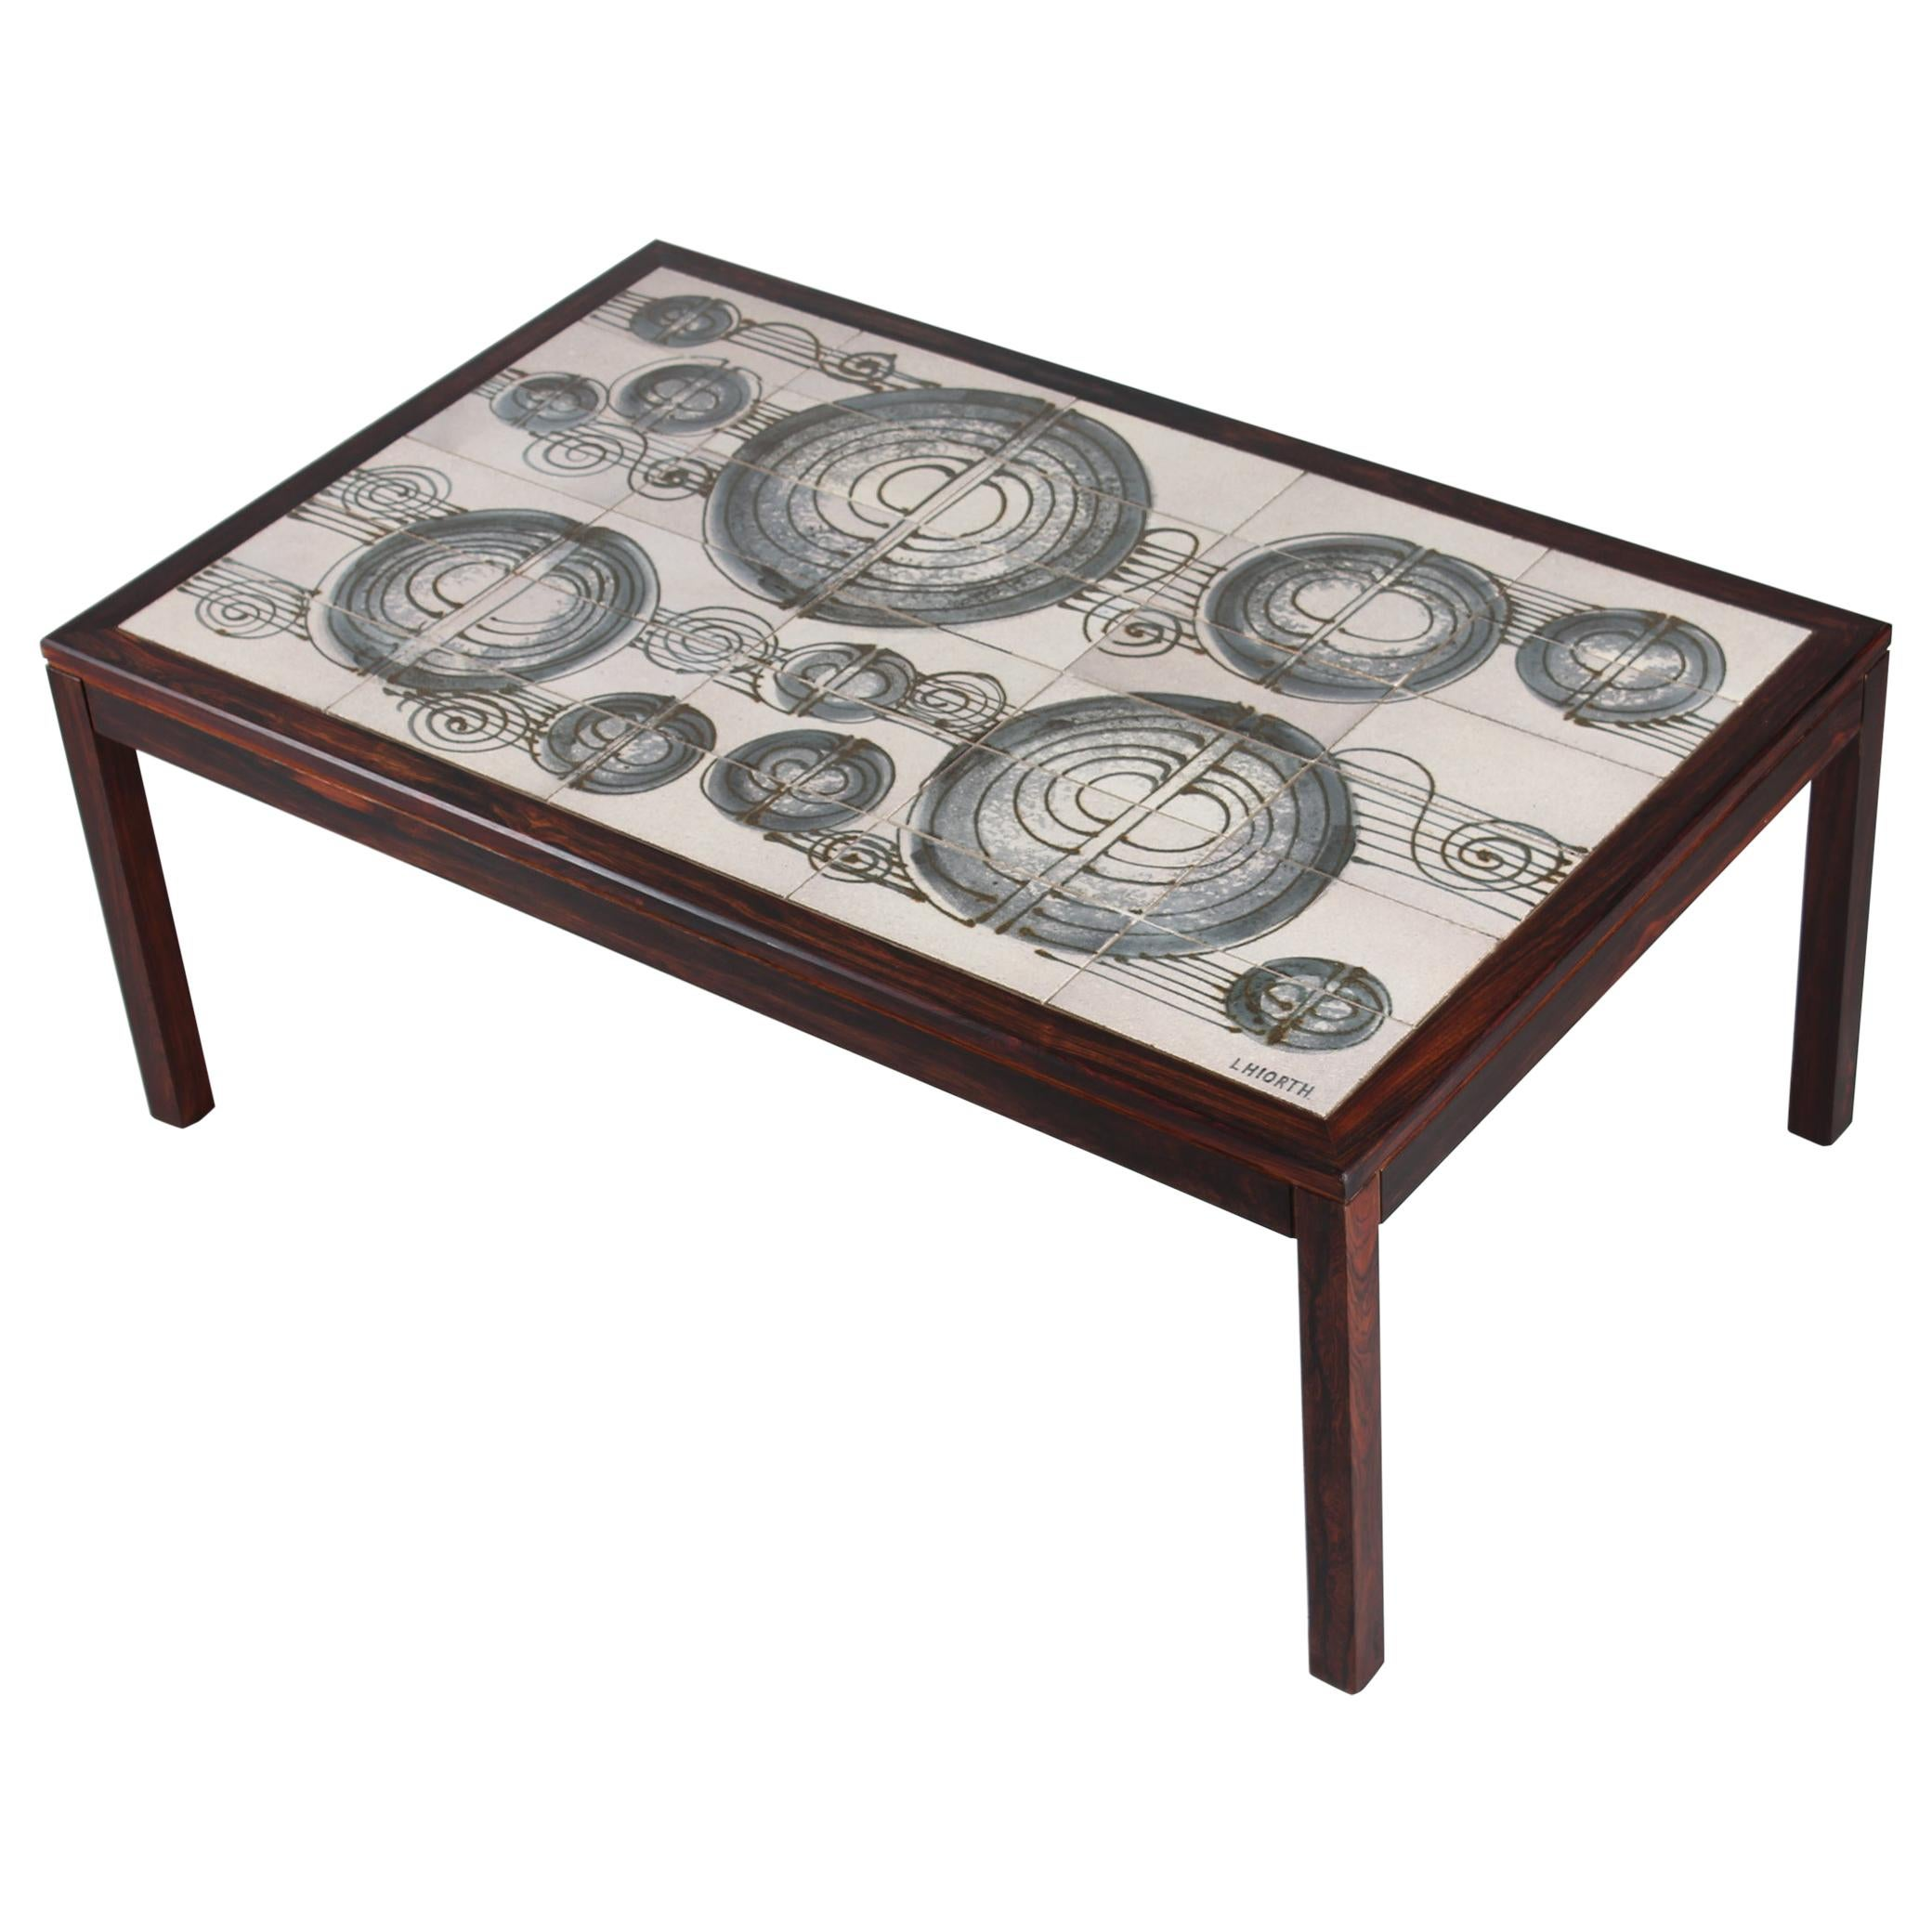 Danish Modern Oblong Wooden Coffee Table with Ceramic Tiles from L. Hjorth 1960s